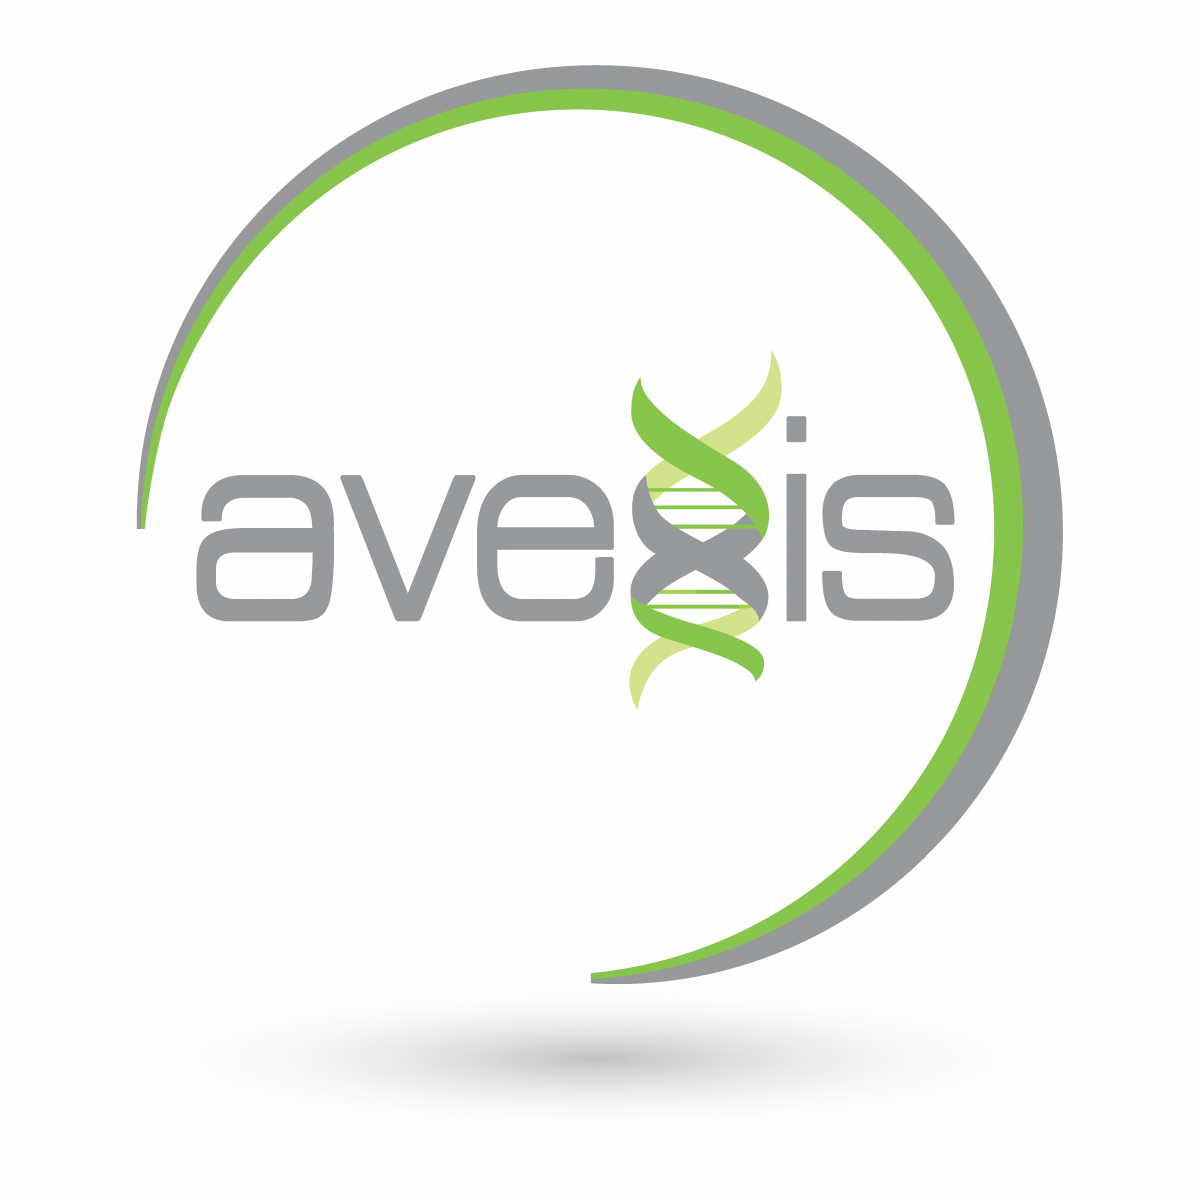 John Carbona Steps Down as AveXis CEO; Dallas Based AveXis Inc. Announces Management Succession Plan